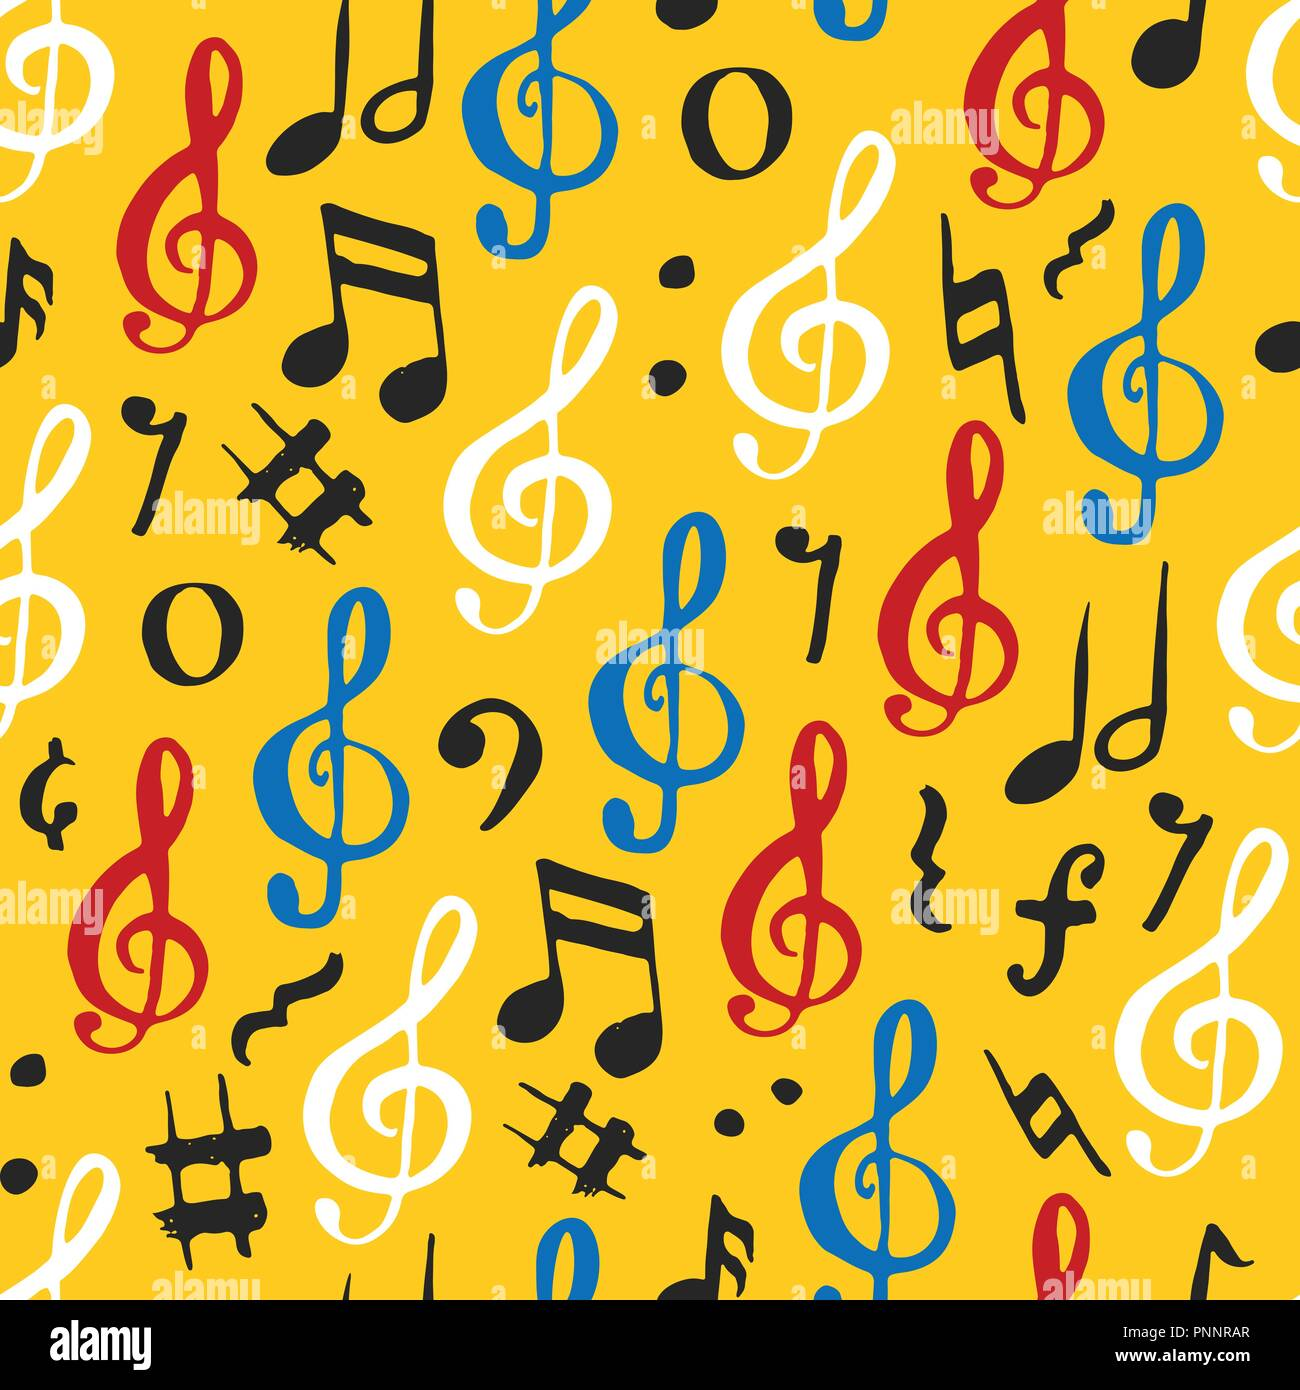 Music Note Seamless Pattern Vector Illustration Hand Drawn Sketched